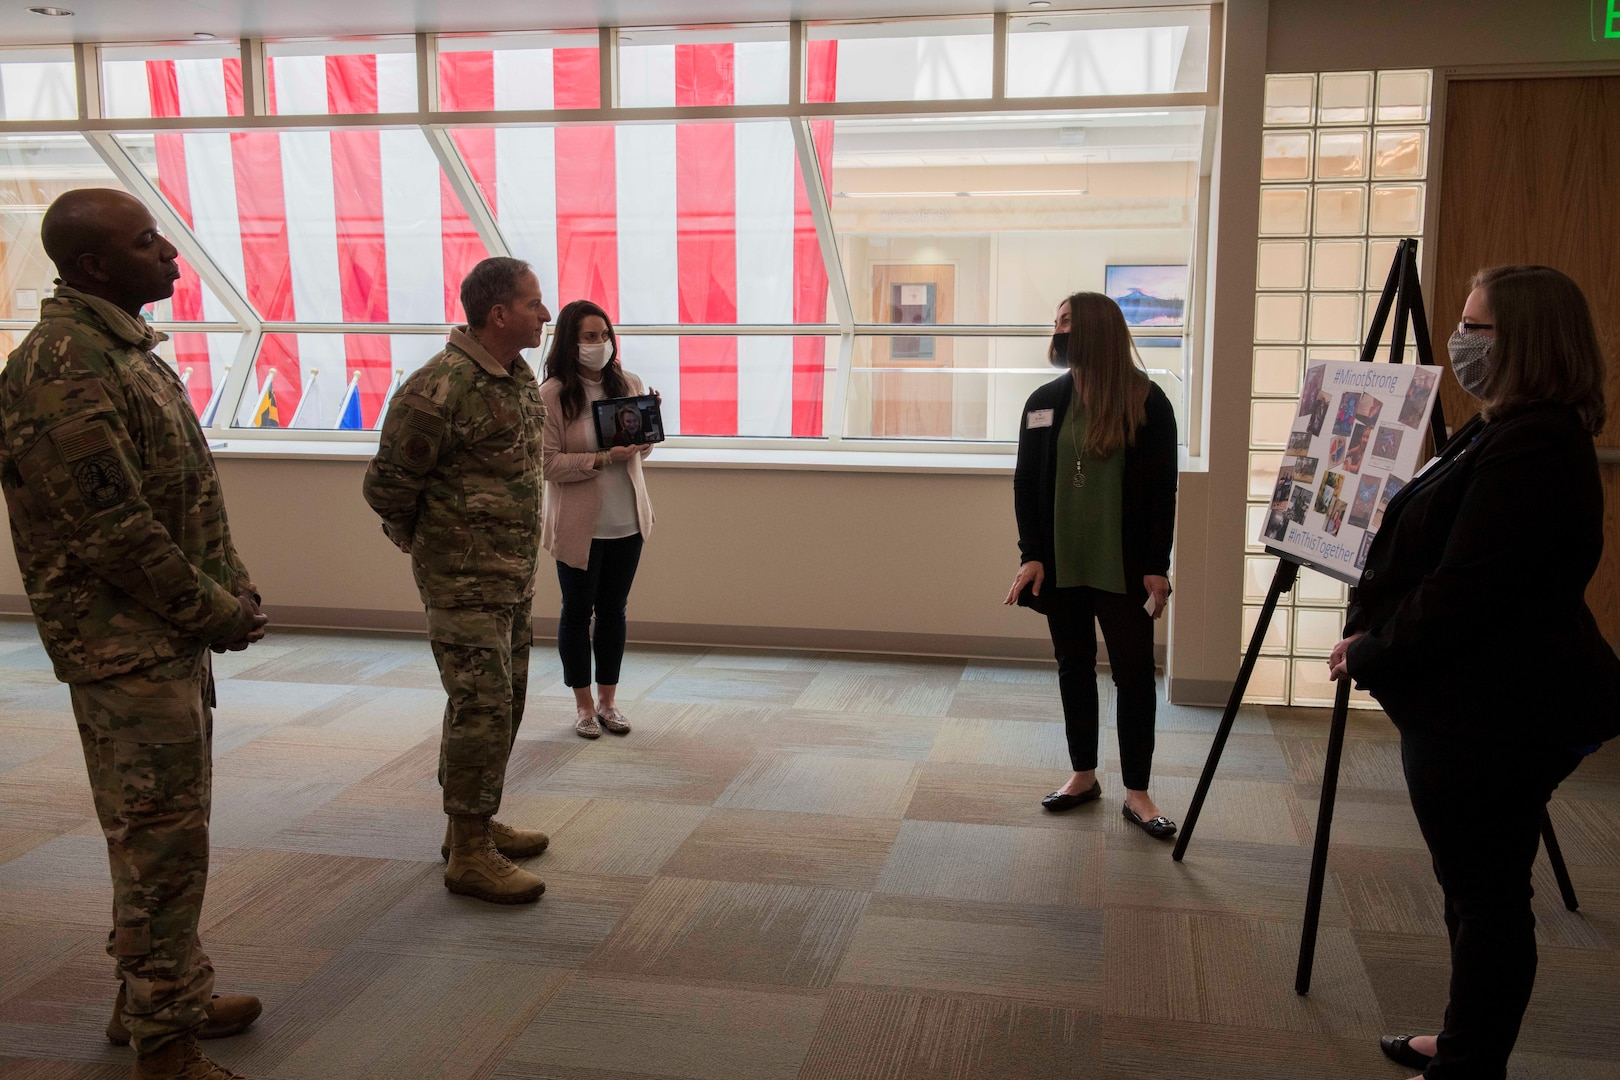 Air Force Chief of Staff Gen. David L. Goldfein and Chief Master Sgt. of the Air Force Kaleth O. Wright receive briefings from key spouses at Minot Air Force Base, North Dakota, May 14, 2020. Air Force Chief of Staff Gen. David L. Goldfein and Chief Master Sgt. of the Air Force Kaleth O. Wright's visit centered around the efforts of Team Minot to combat the COVID-19 pandemic and successfully execute the Global Striker mission.  (U.S. Air Force photo by Airman 1st Class Jesse Jenny)